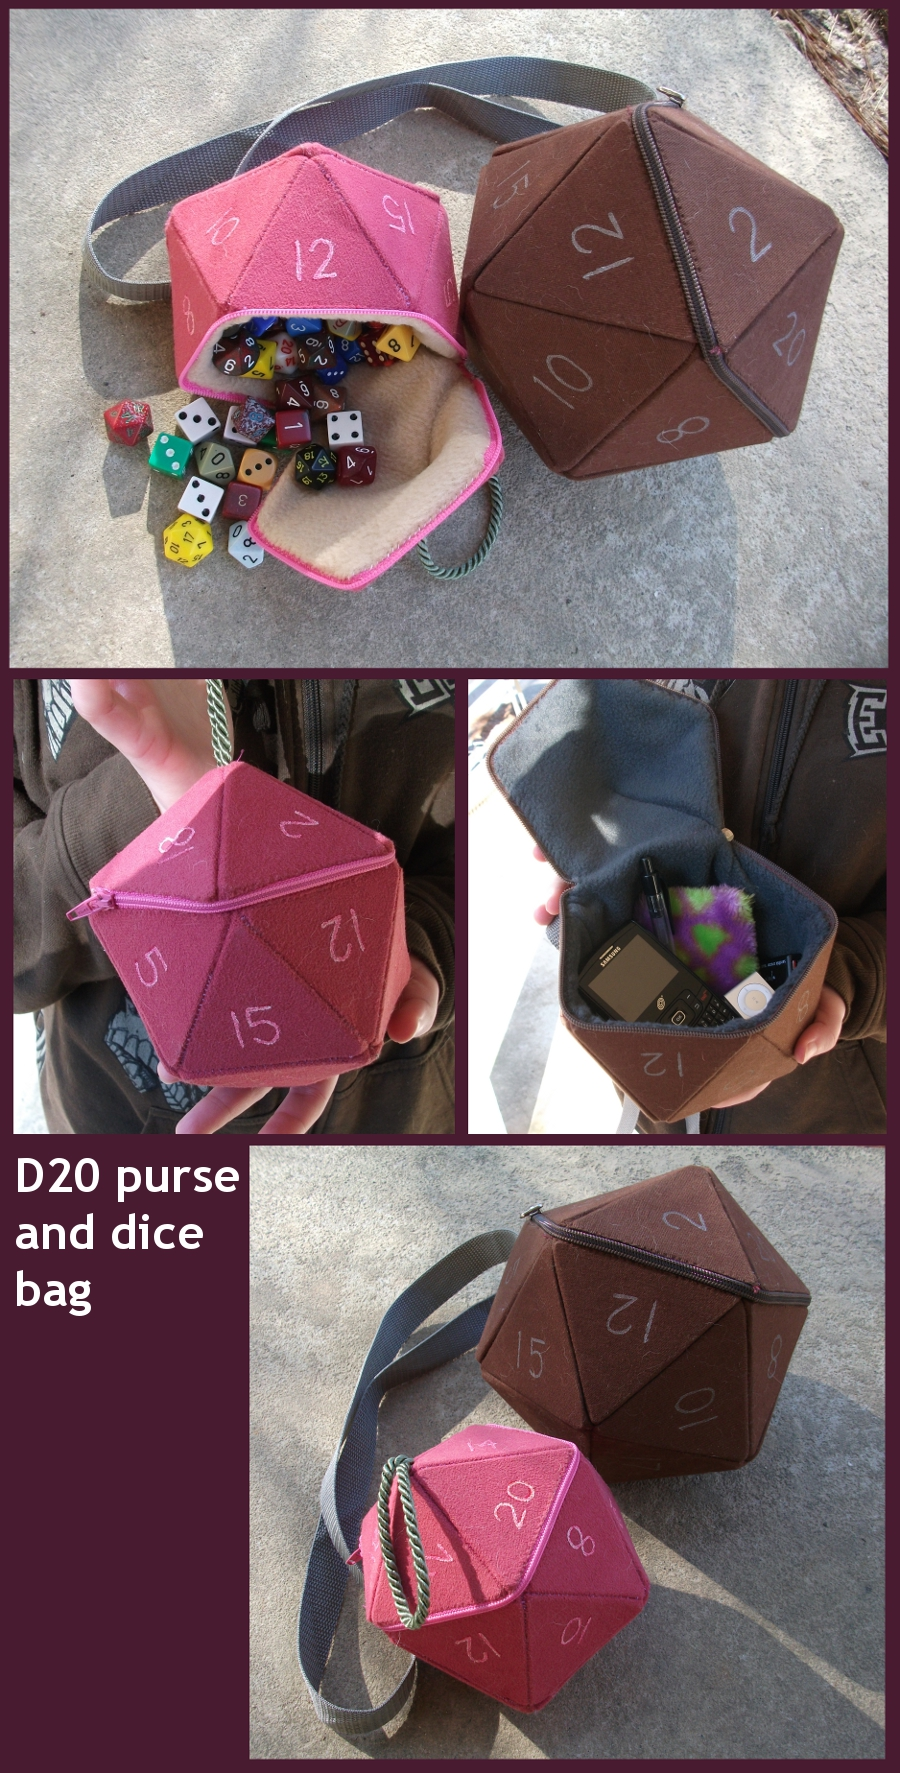 D20 purse and dice bag prototypes by angermuffin